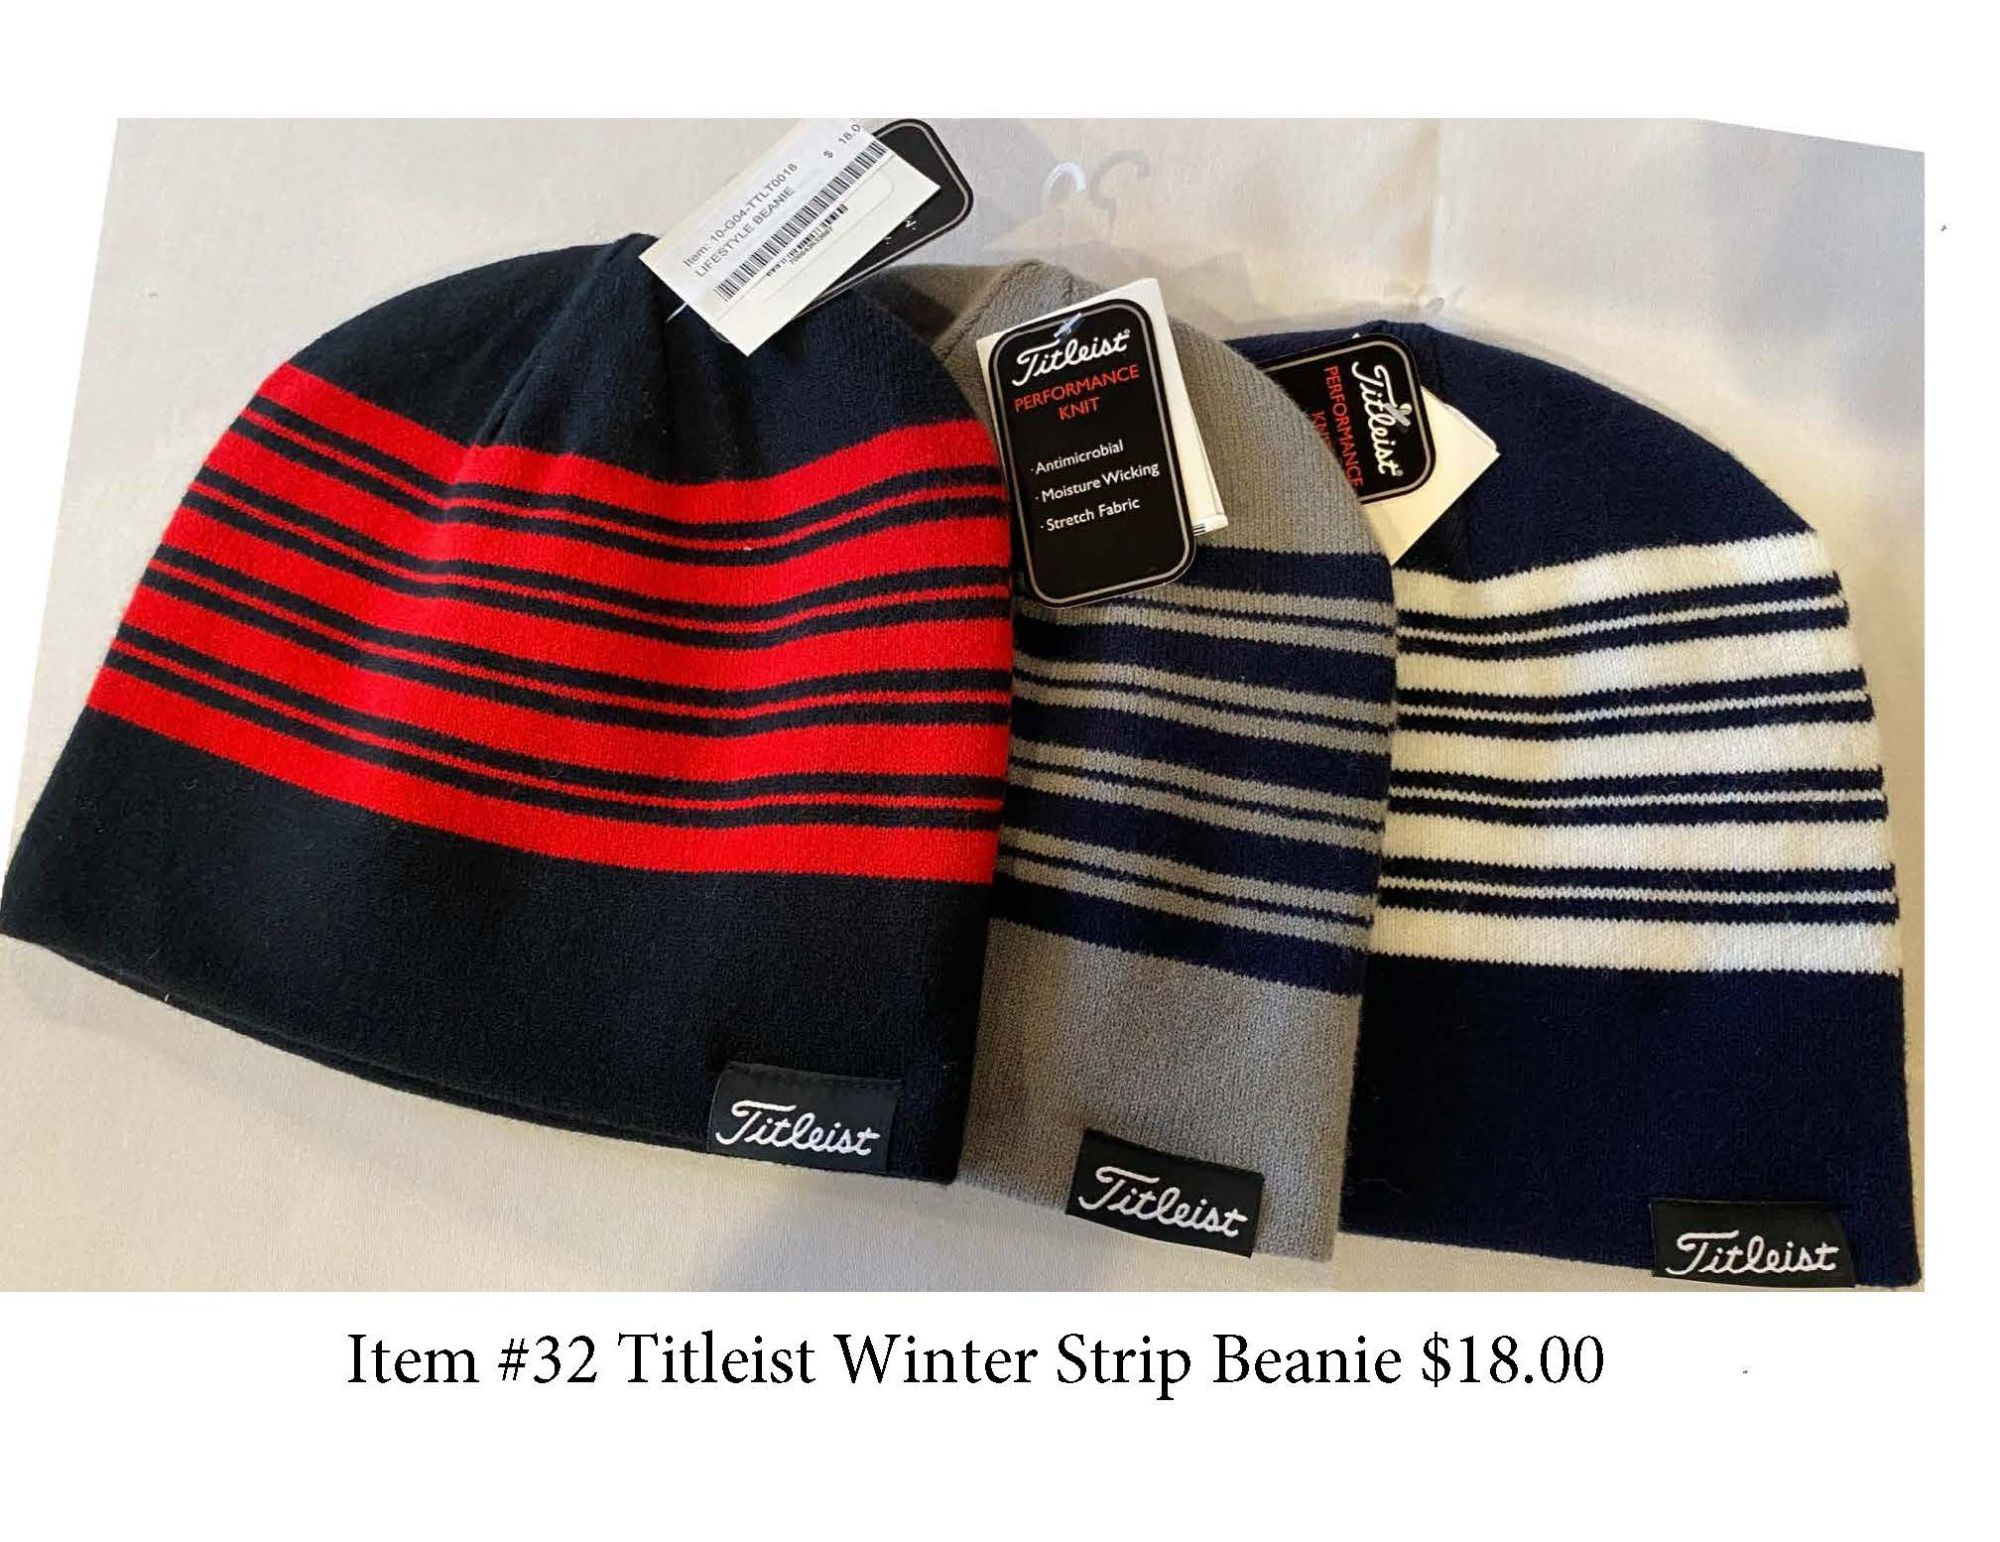 Item_32_Titleist_Winter_Strip_Beanie_18.00.jpg